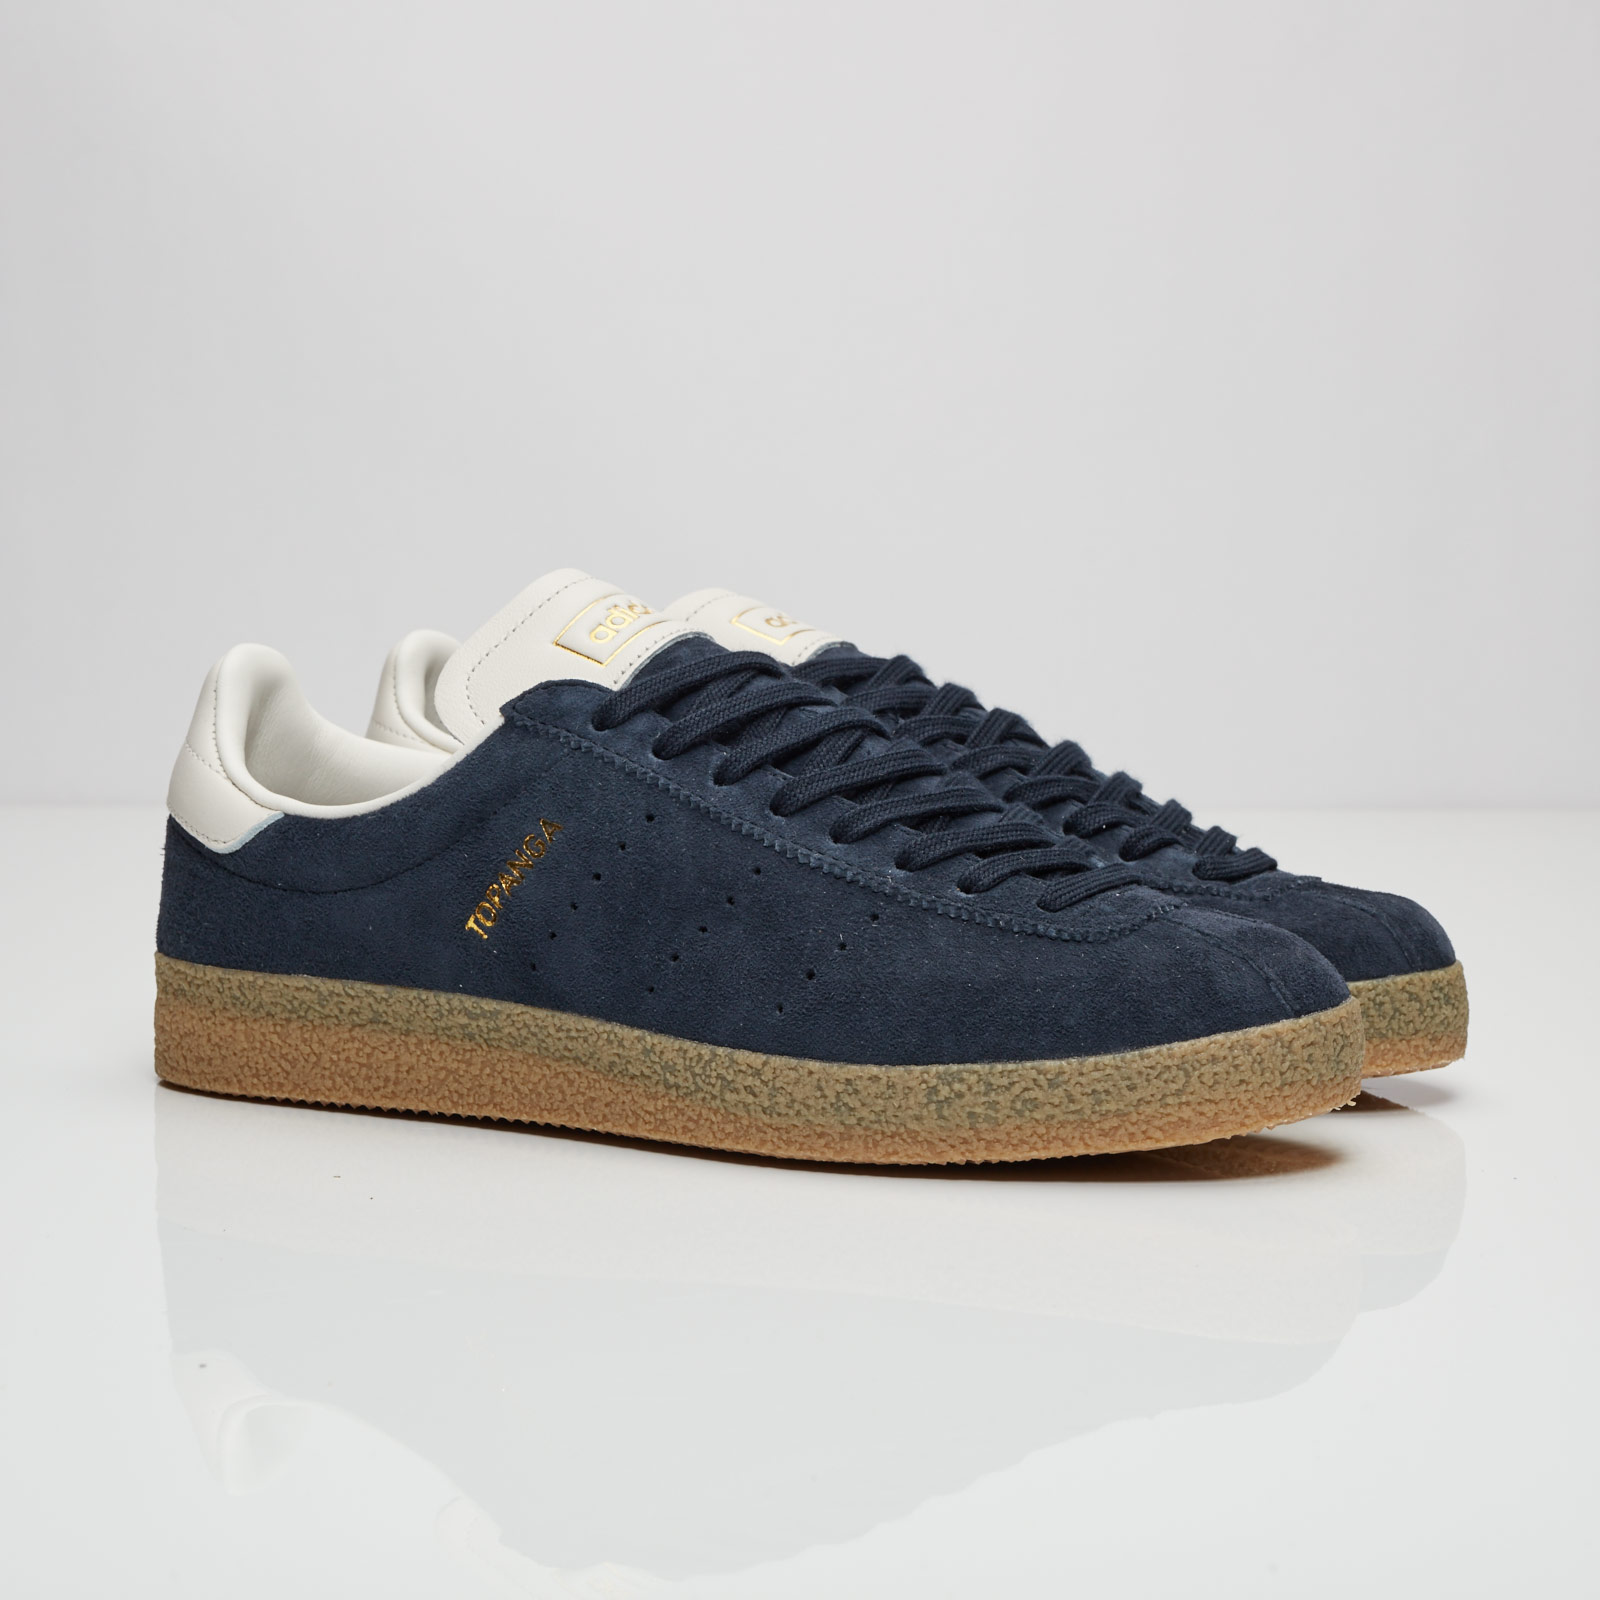 The newest adidas Originals Topanga Clean Mens Shoes Navy